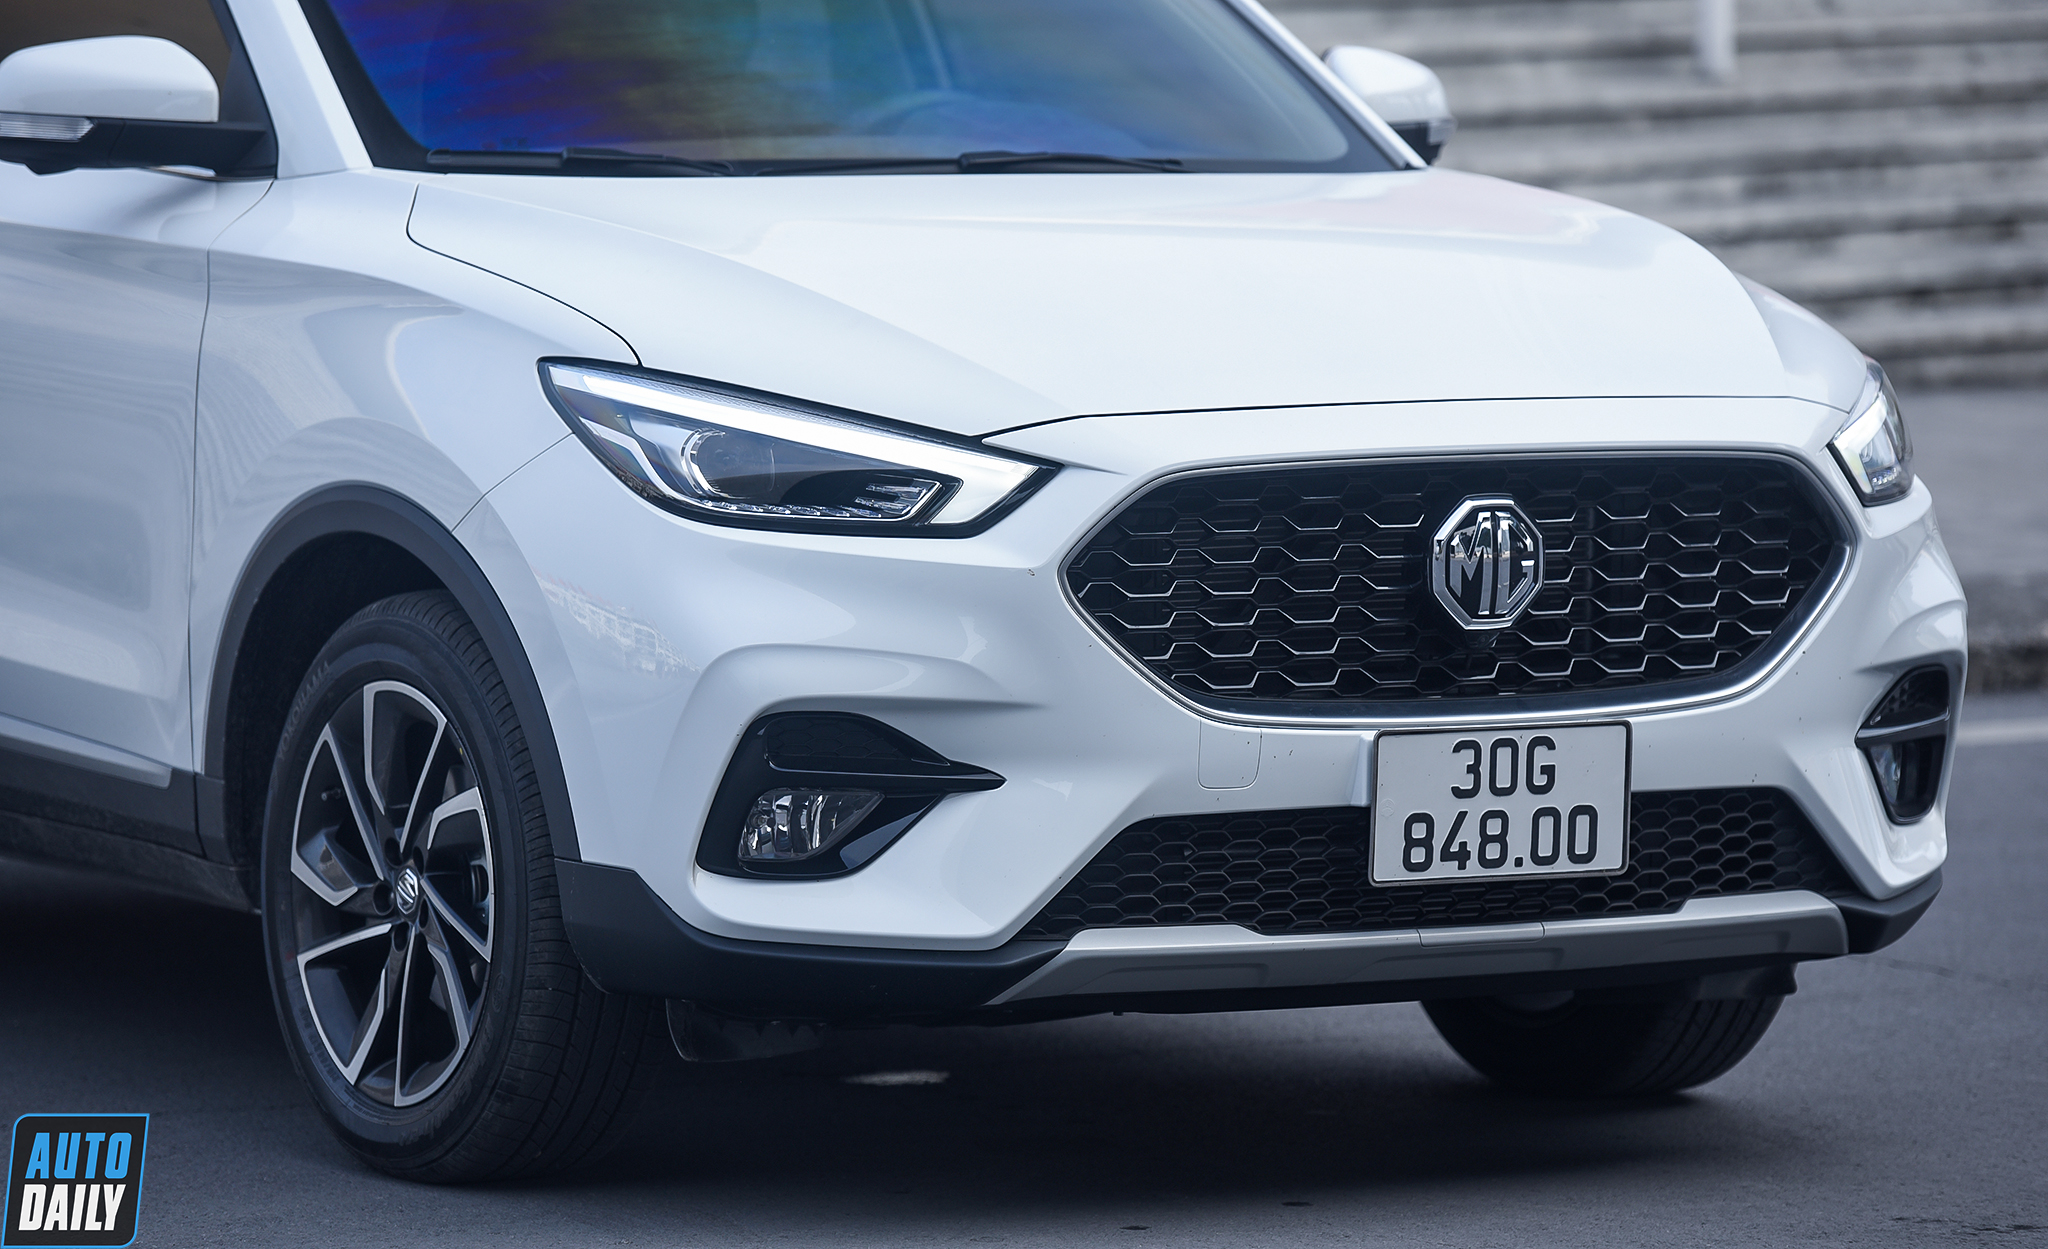 MG ZS 2021 evaluation: A reasonable choice of VND 600 million 1.jpg price range